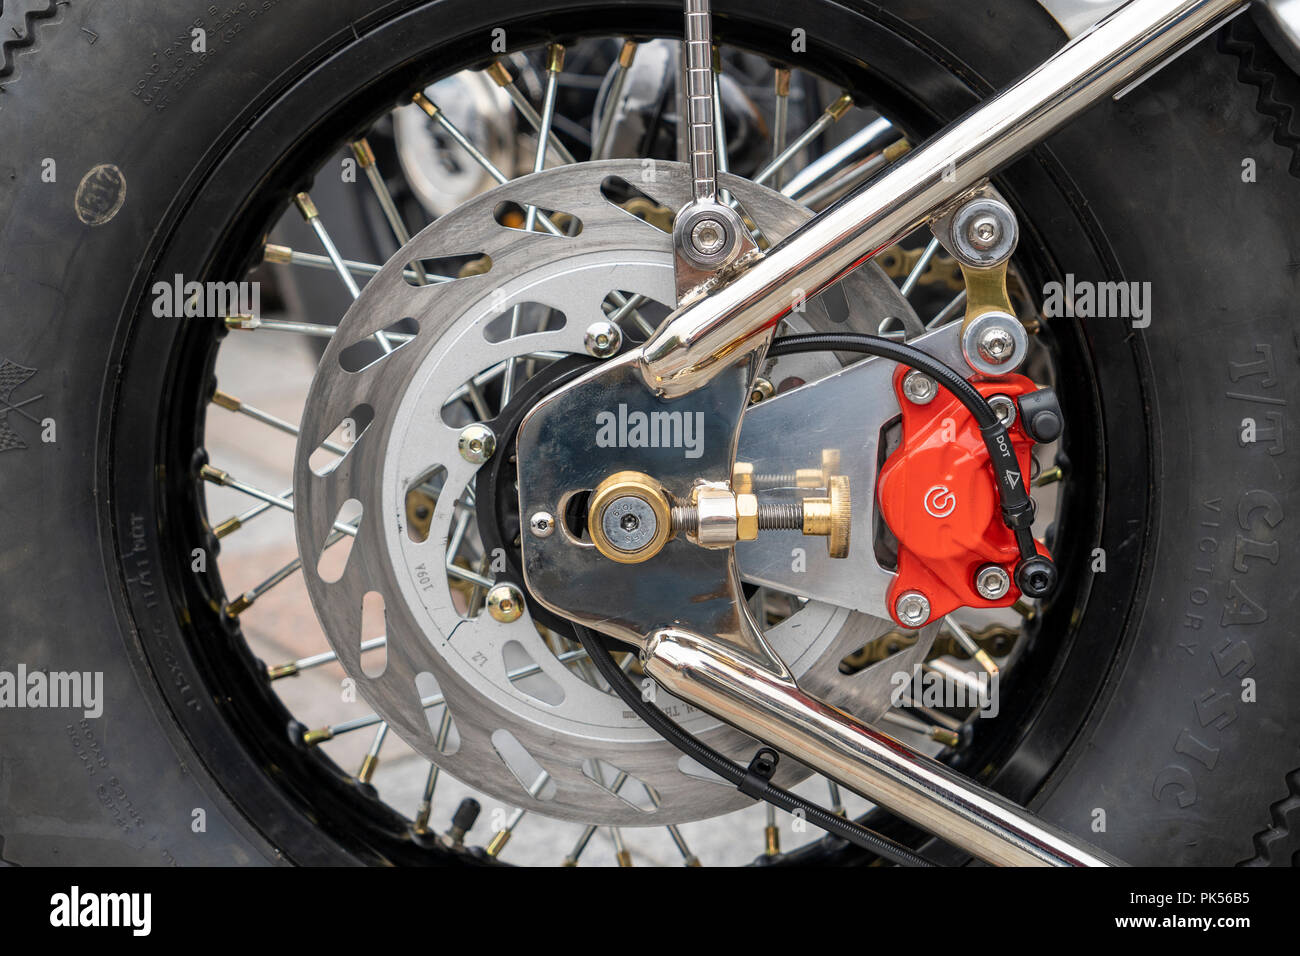 Disc brake assembly on motorcycle back wheel - Stock Image